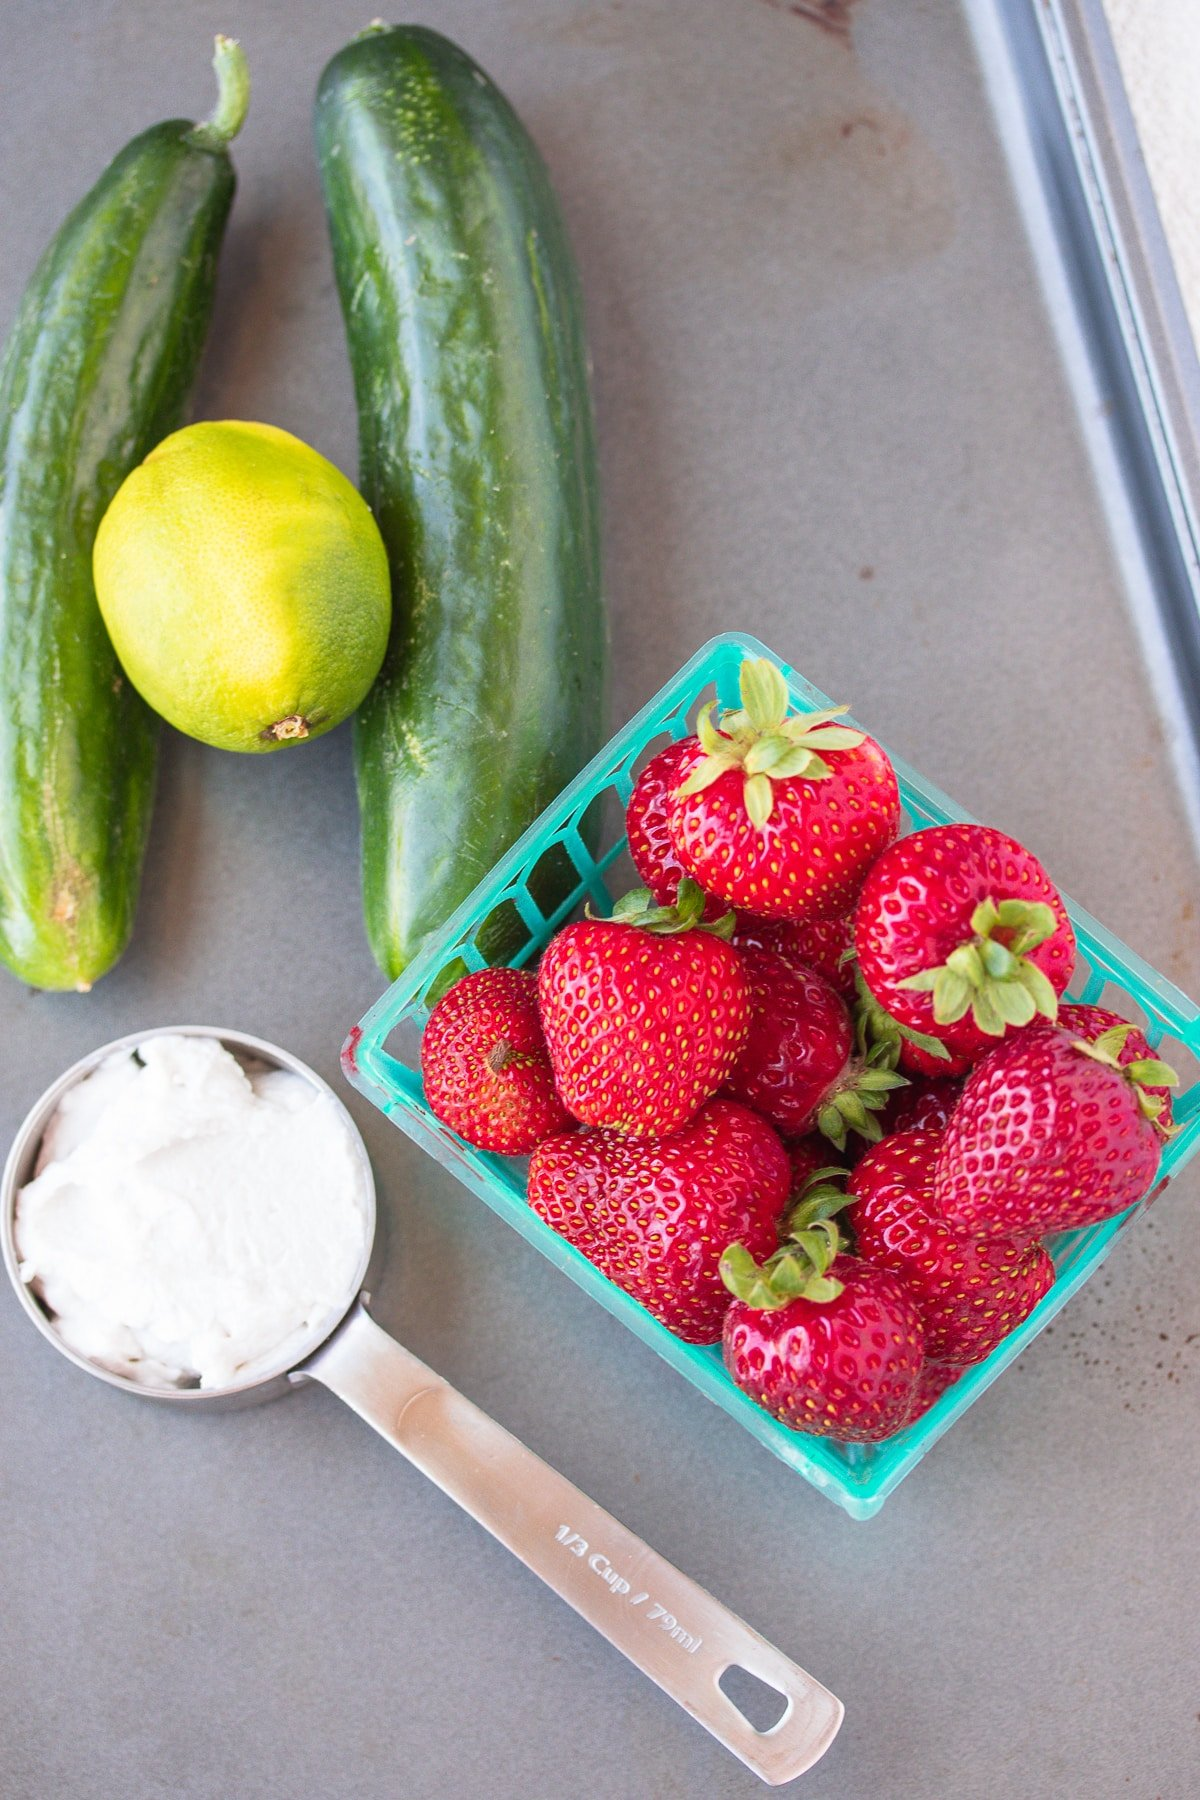 ingredients for strawberry soup recipe